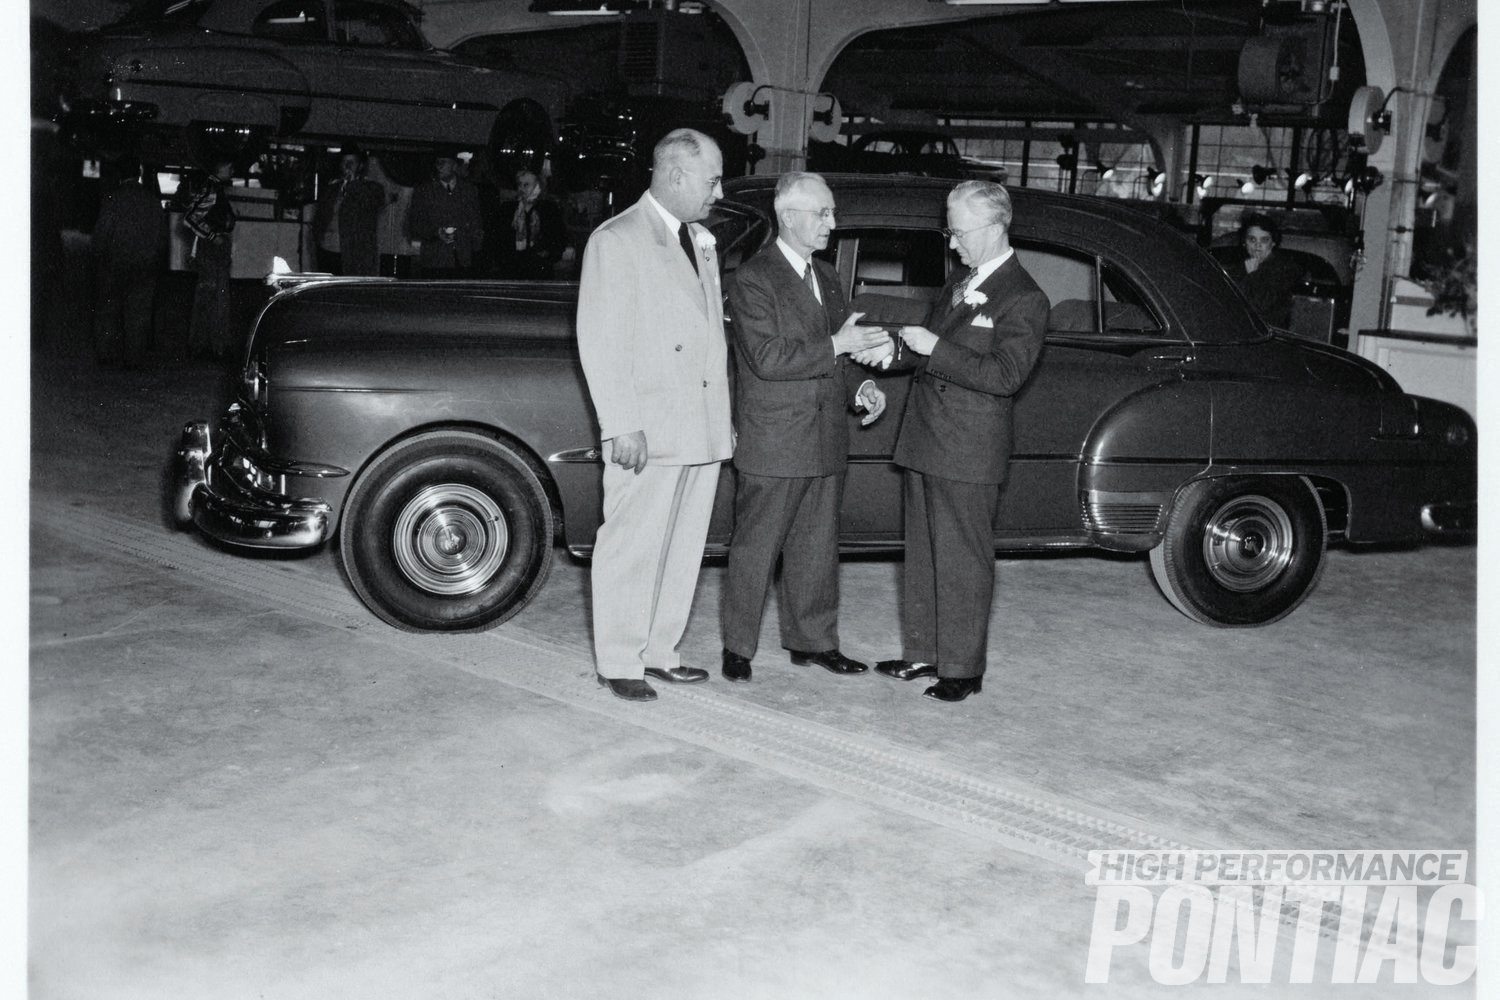 The first car delivered from the Pontiac Retail Store was this '51 Chieftain sedan. Thousands more would follow before post-DeLorean management closed its doors in 1971.